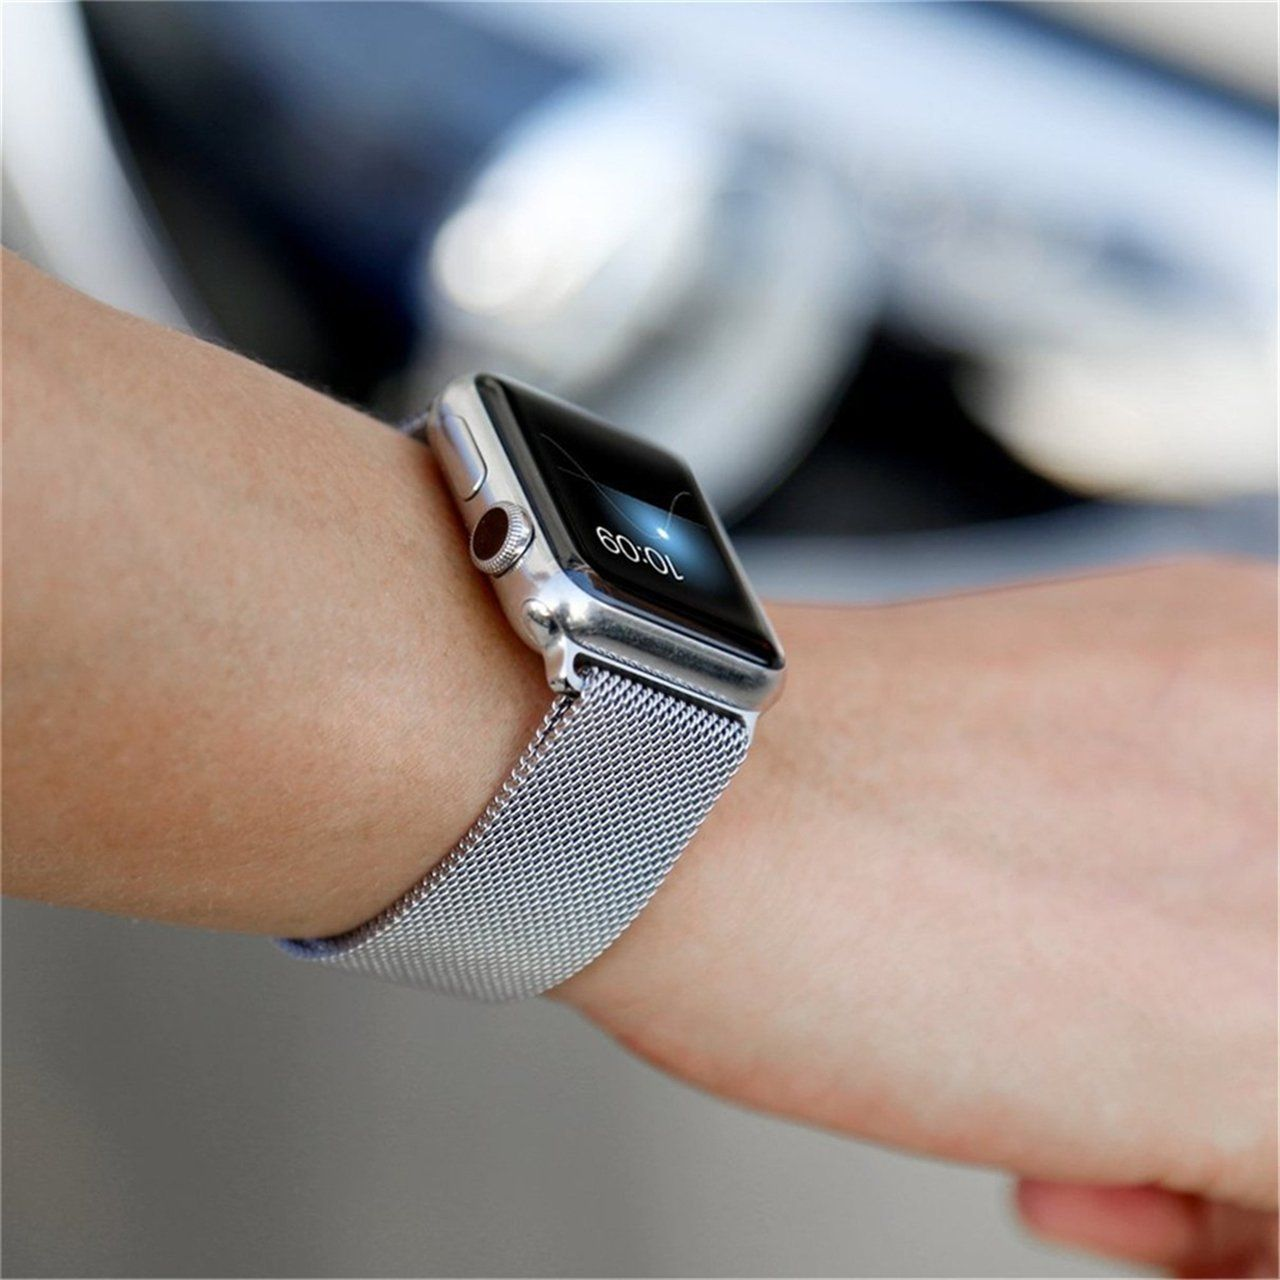 Amazon Com For Apple Watch Band Milanese Loop Likeity Stainless Steel Magnetic Band With Metal Case For A Apple Watch Bands Apple Watch Bands 42mm Watch Bands